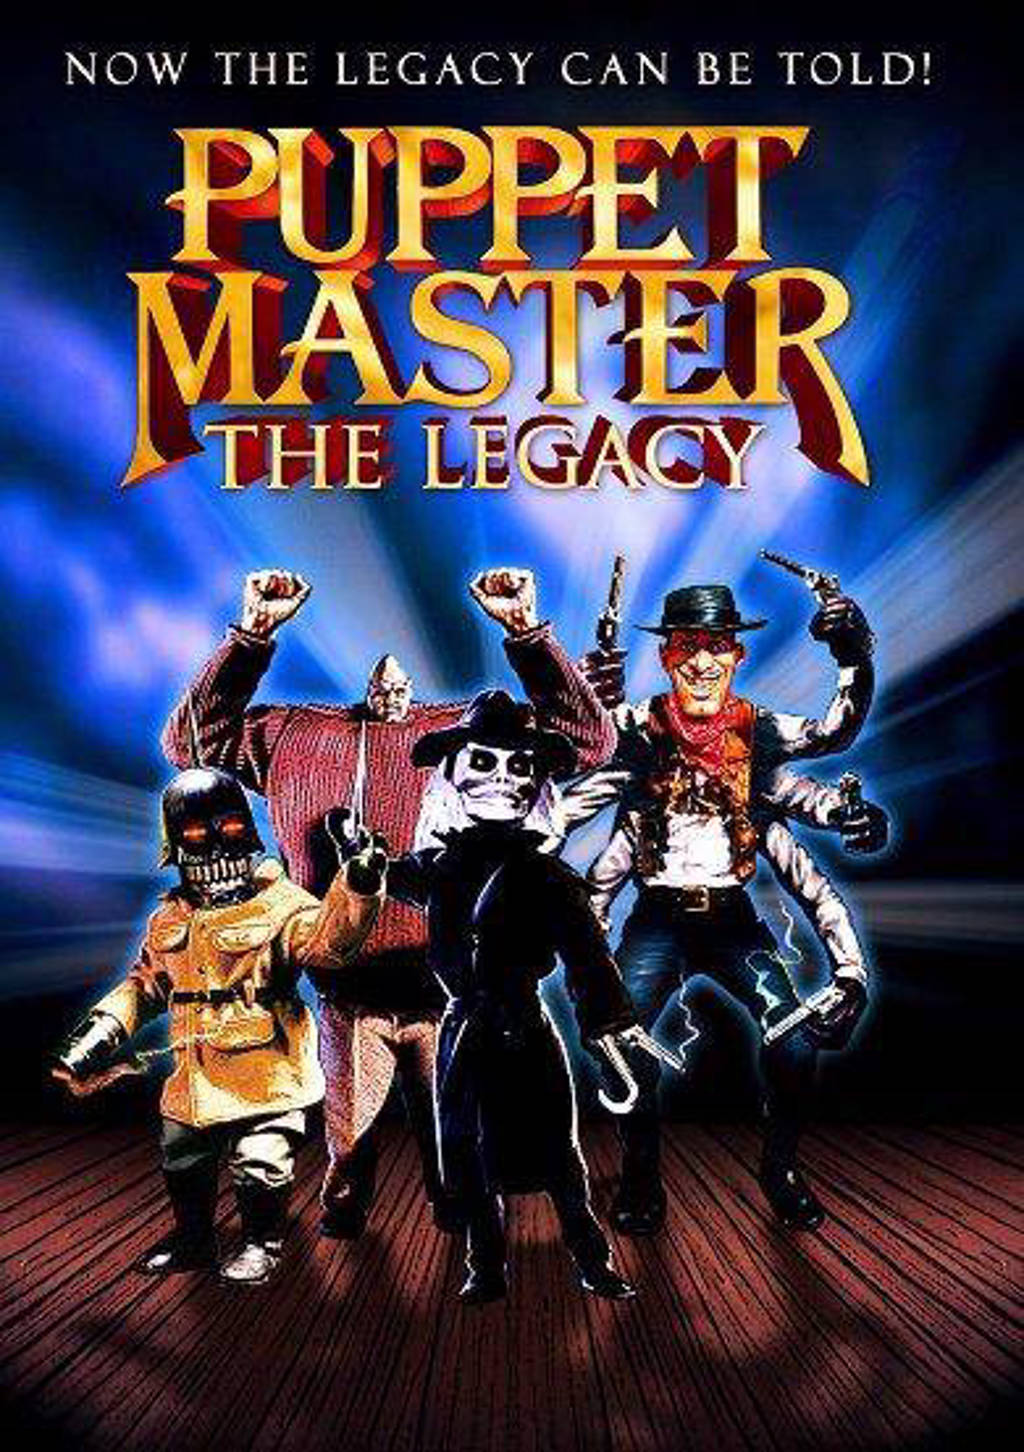 Puppet master - The legacy (DVD)